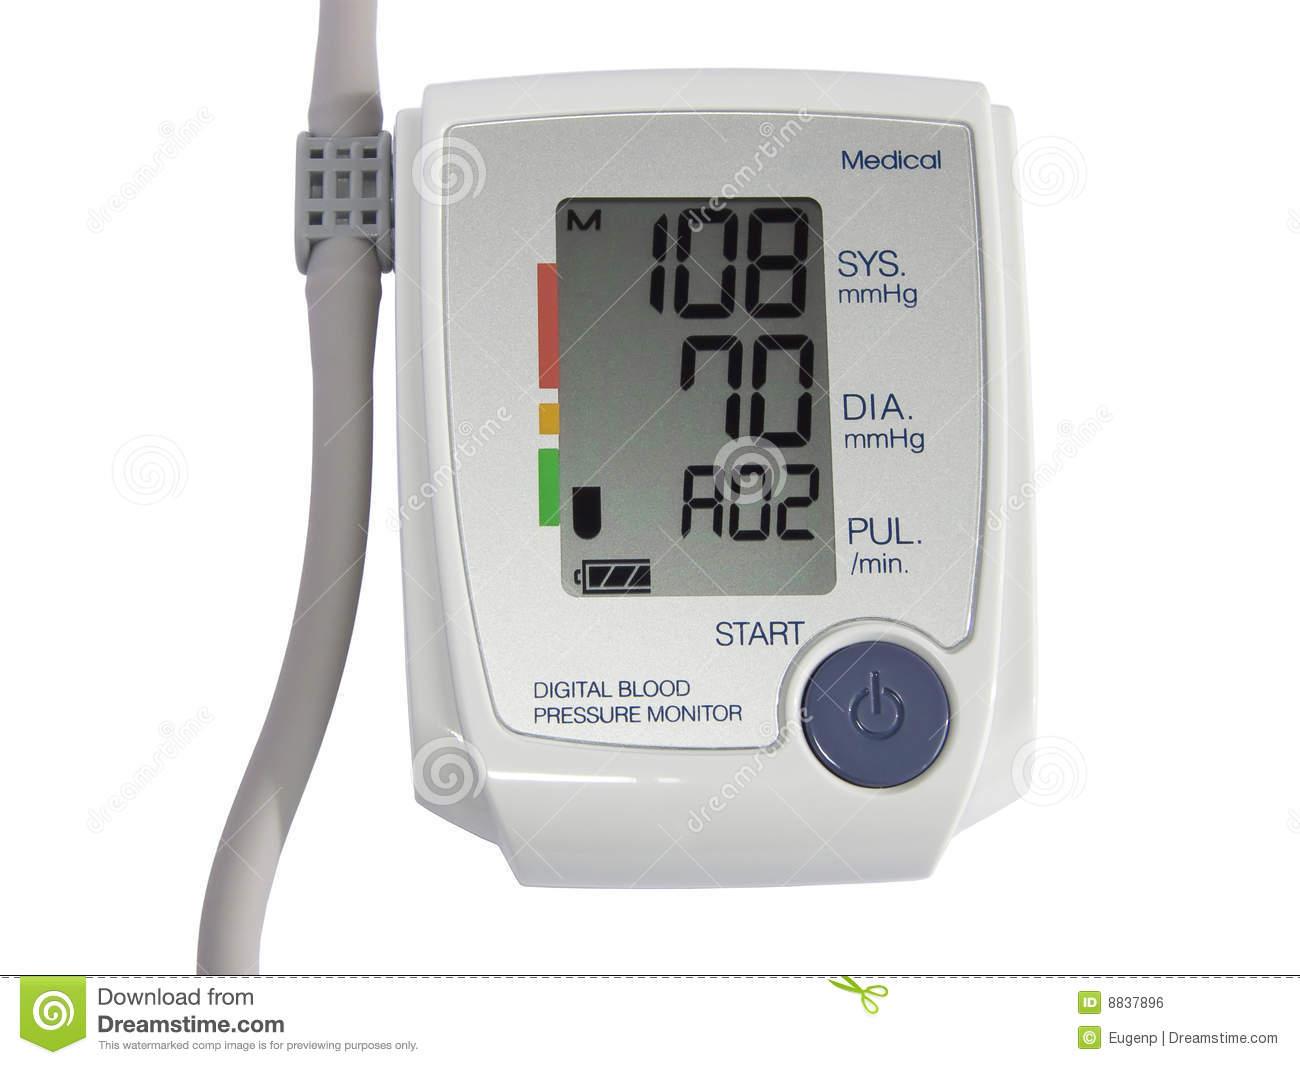 How to Pick a Home Blood Pressure Monitor